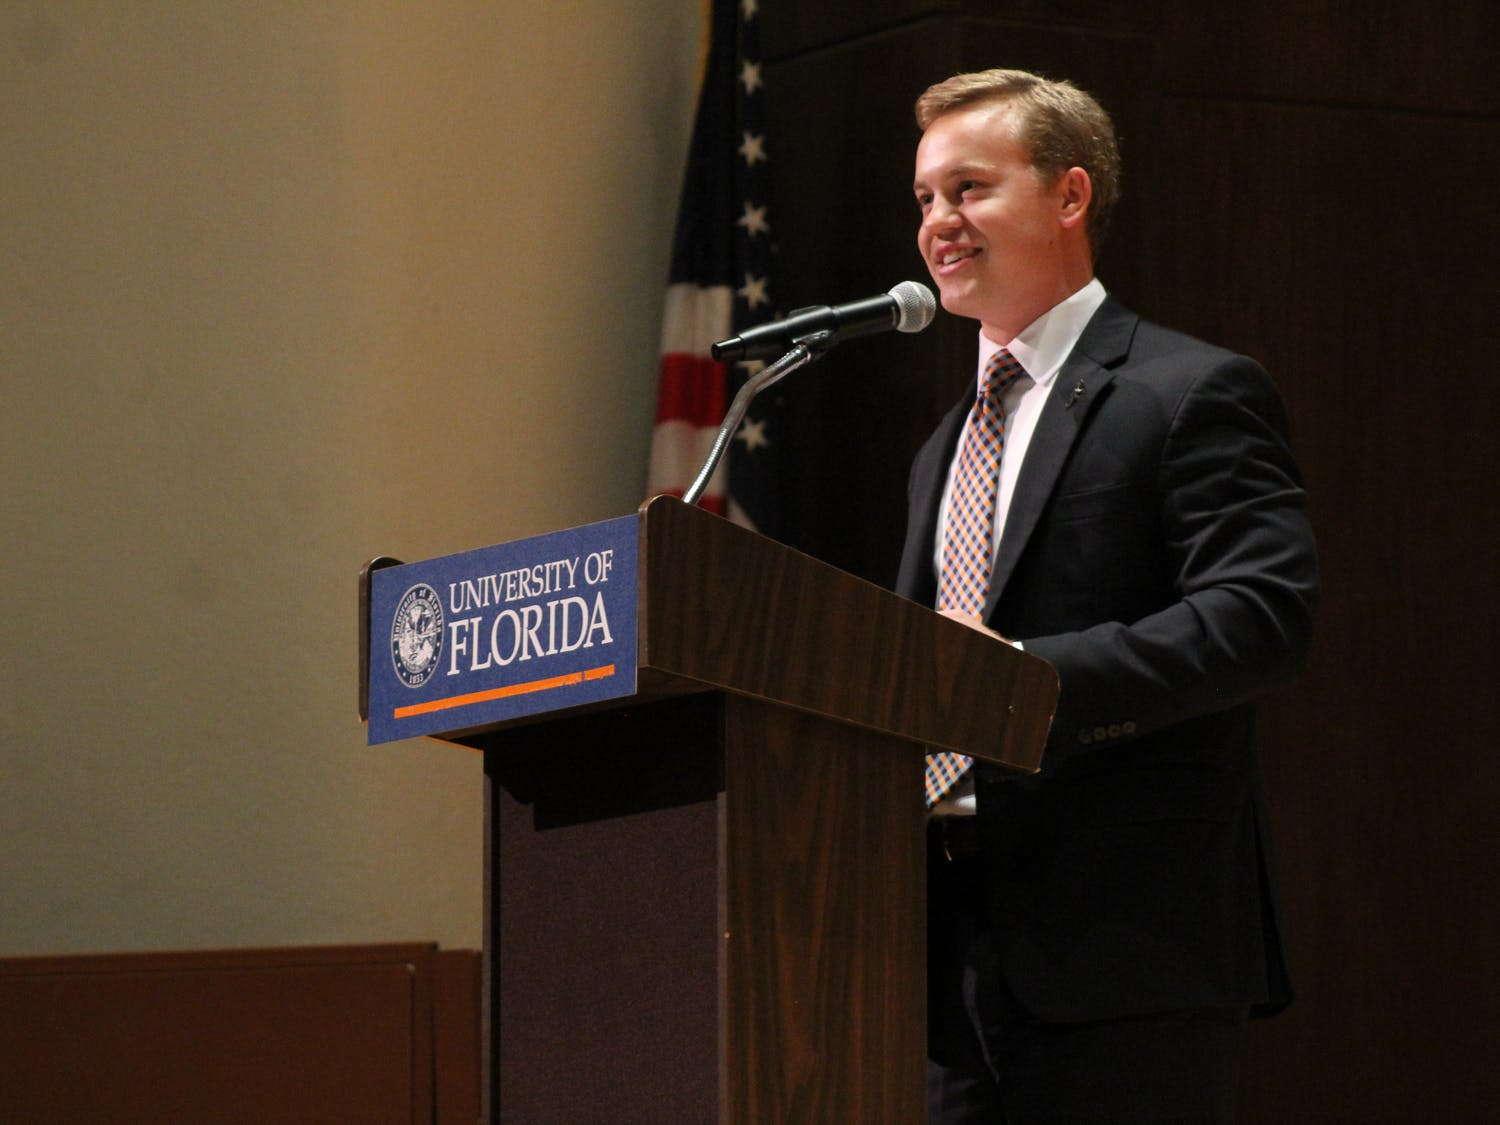 Former Student Body President Smith Meyers vetoed six bills at the end of his term that had previously been passed.